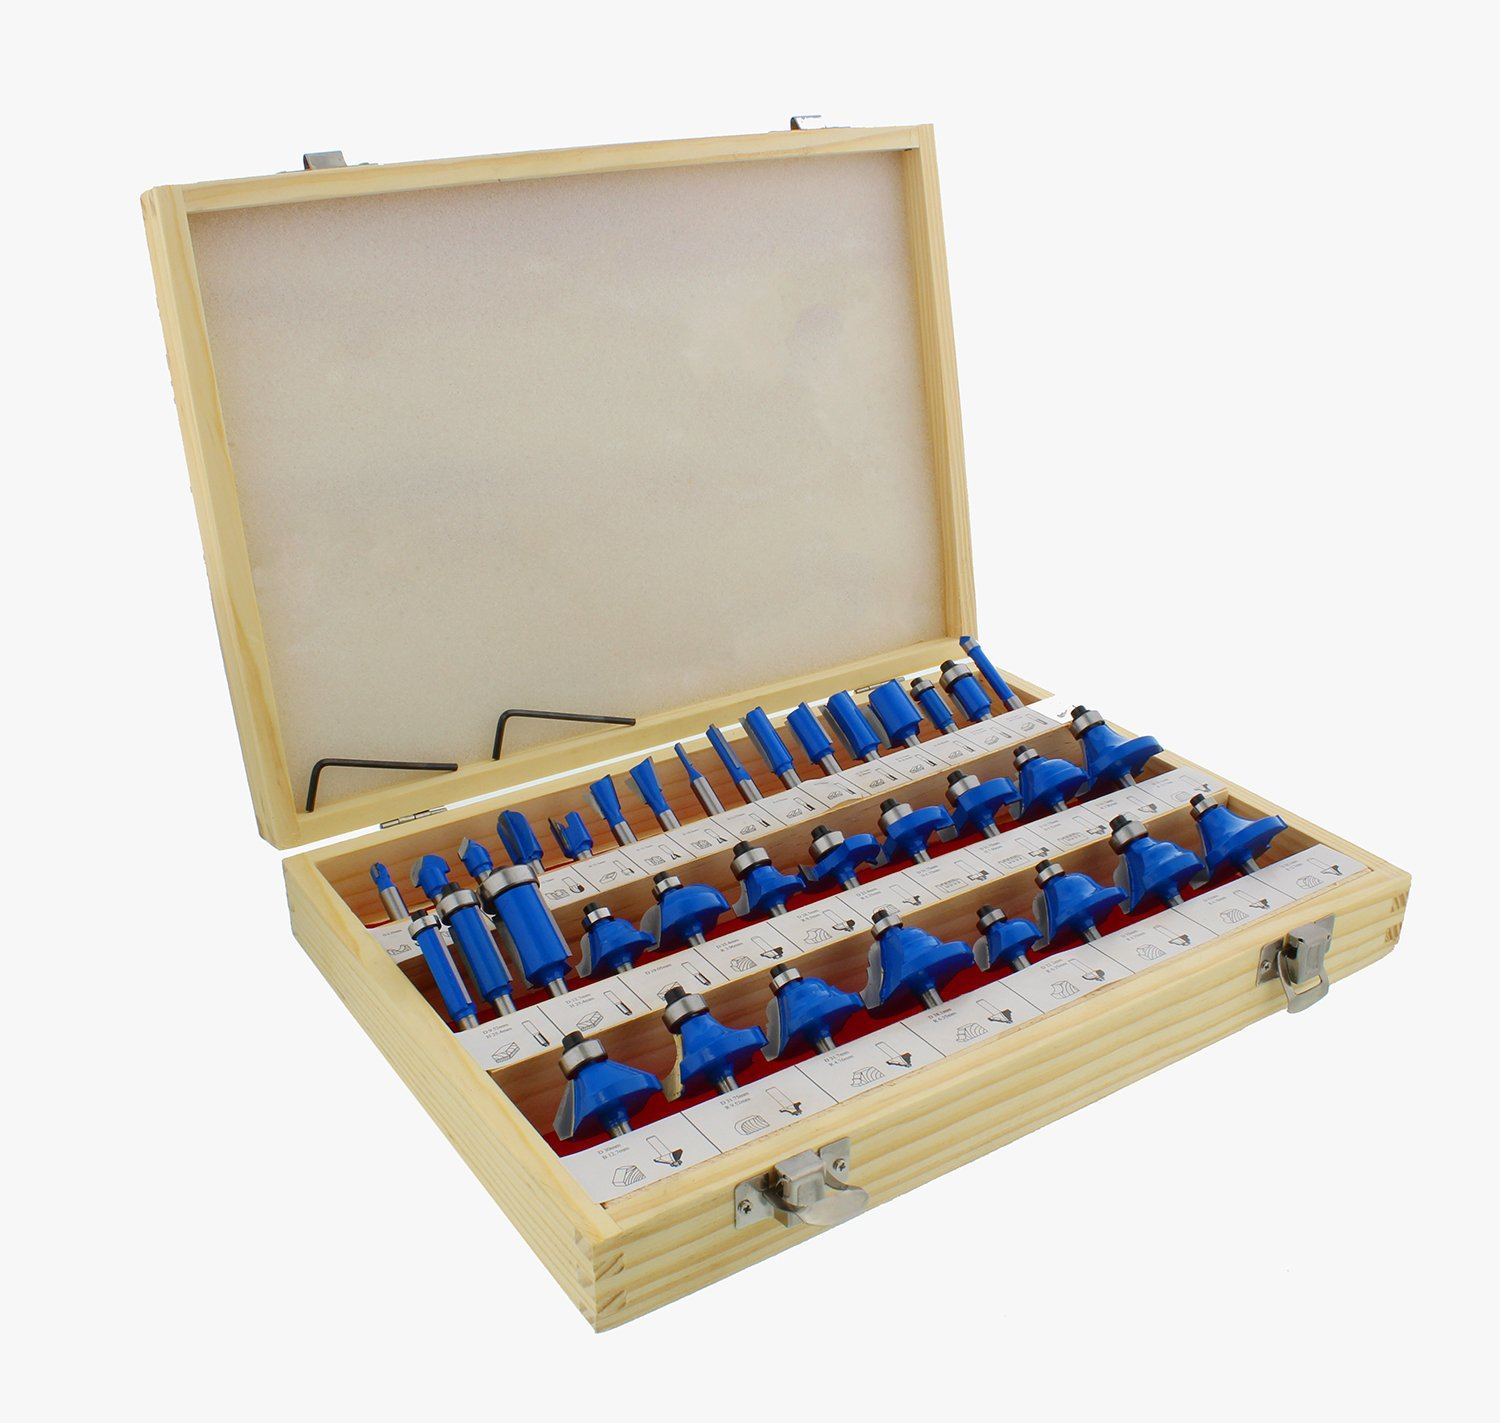 ABN Tungsten Carbide Router Bit 35-Piece Set, 1/4'' Inch Shank – Woodworking Routing Drill Bits Kit with Carrying Case